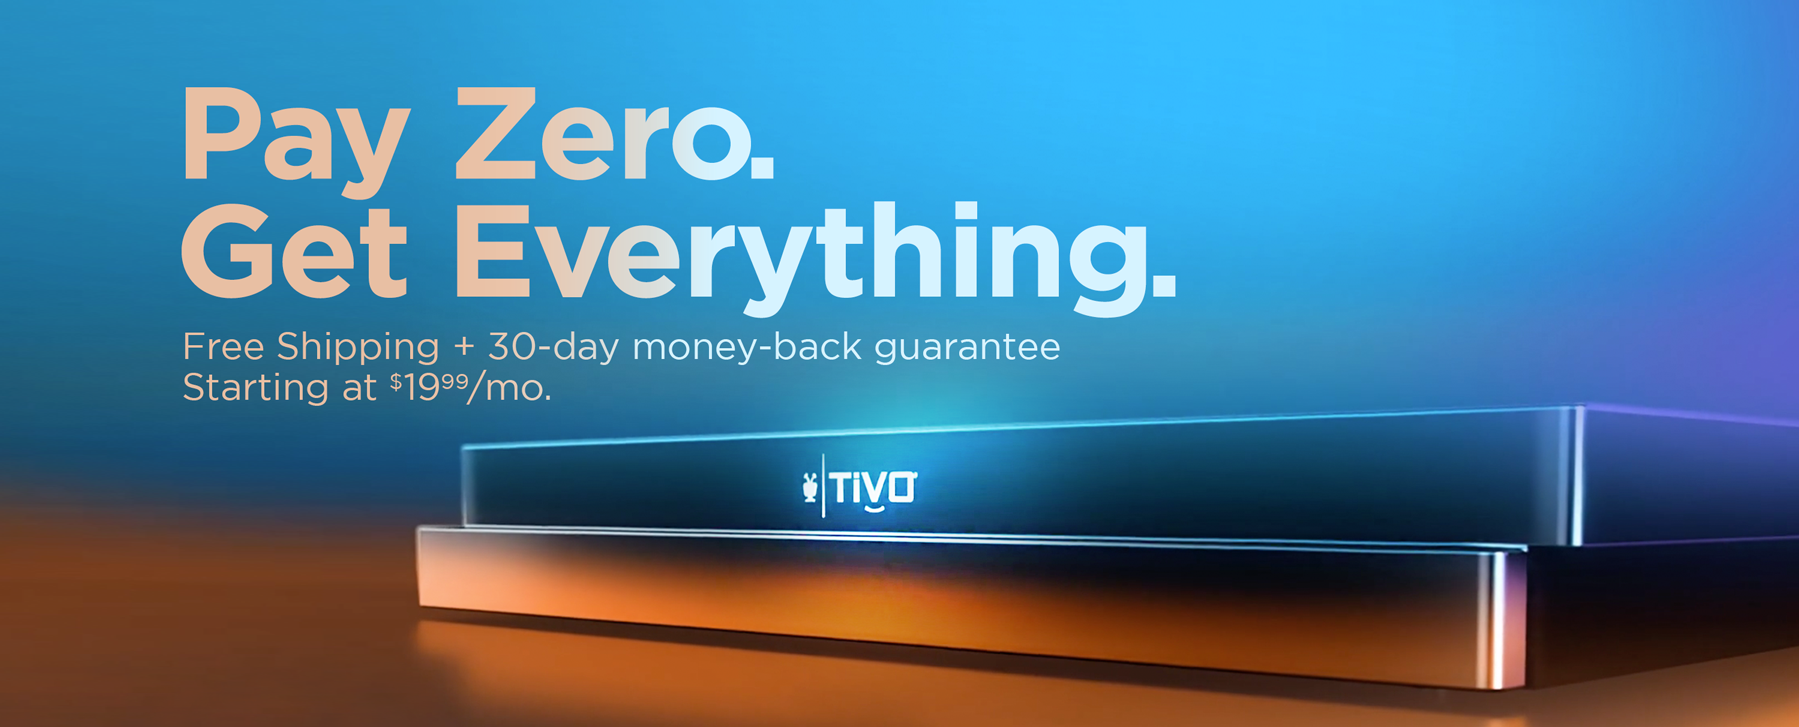 Pay Zero. Get Everything.